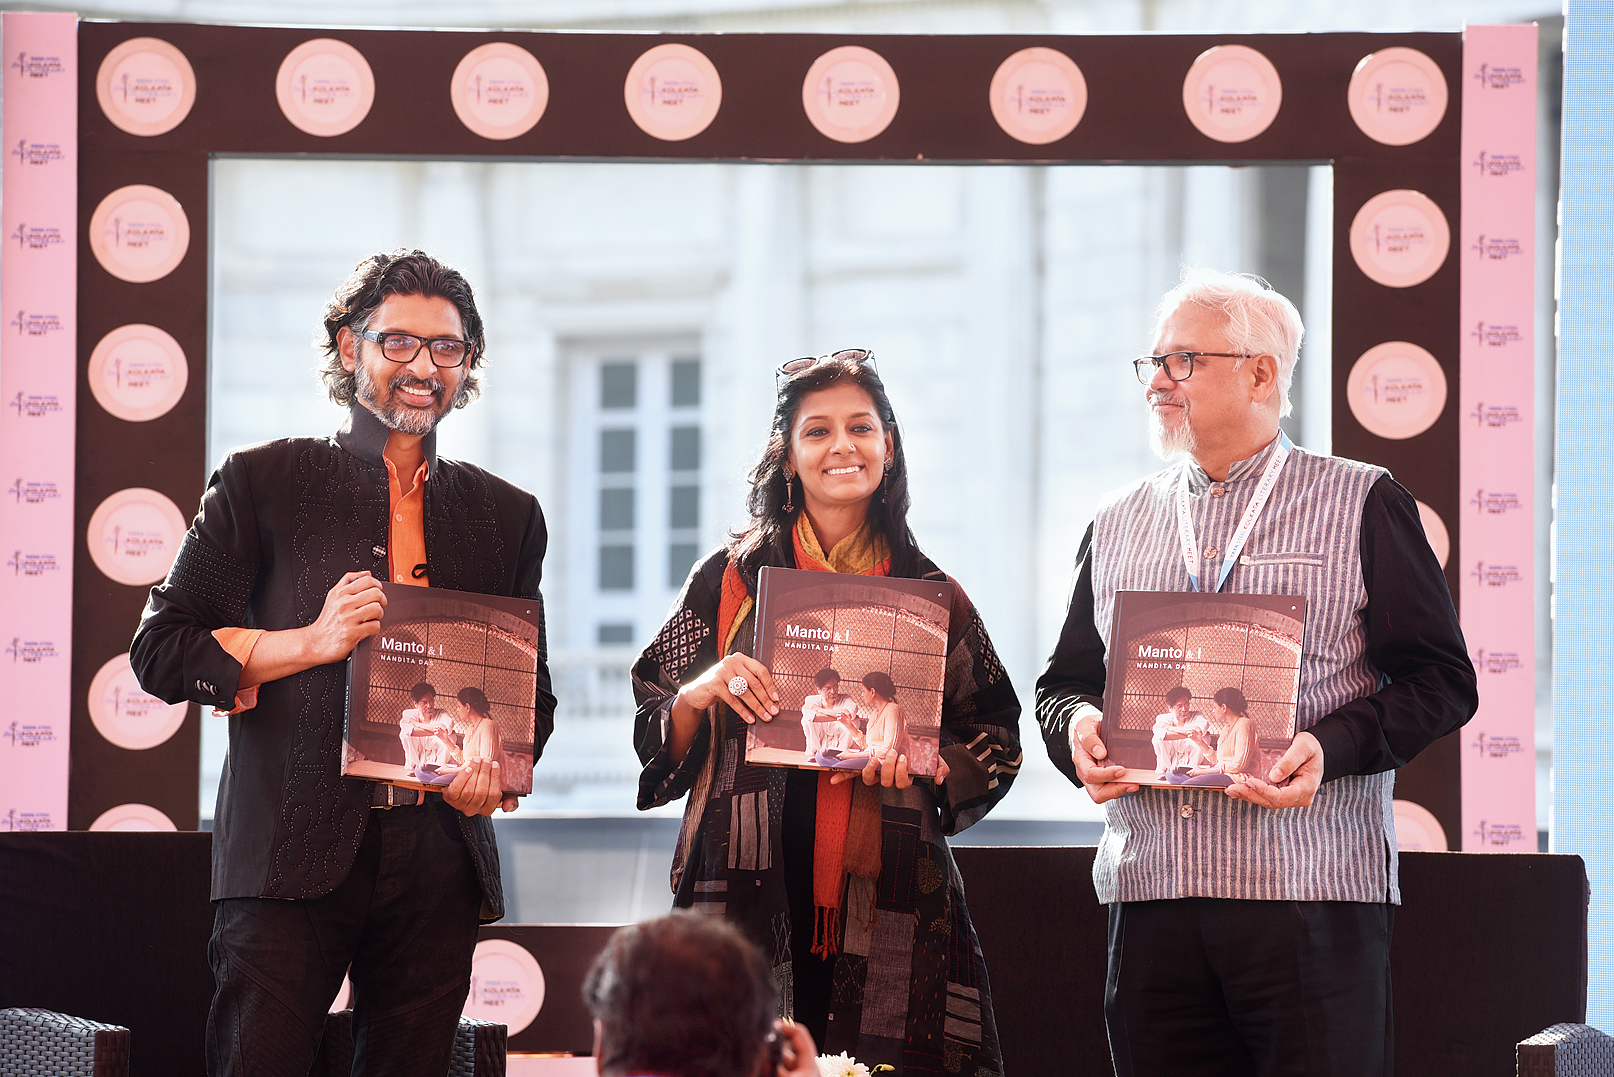 (L-R) Niranjan Iyengar, Nandita Das and Amitav Ghosh with copies of 'Manto & I' on stage at the Tata Steel Kolkata Literary Meet, in association with The Telegraph and Victoria Memorial Hall on January 24.